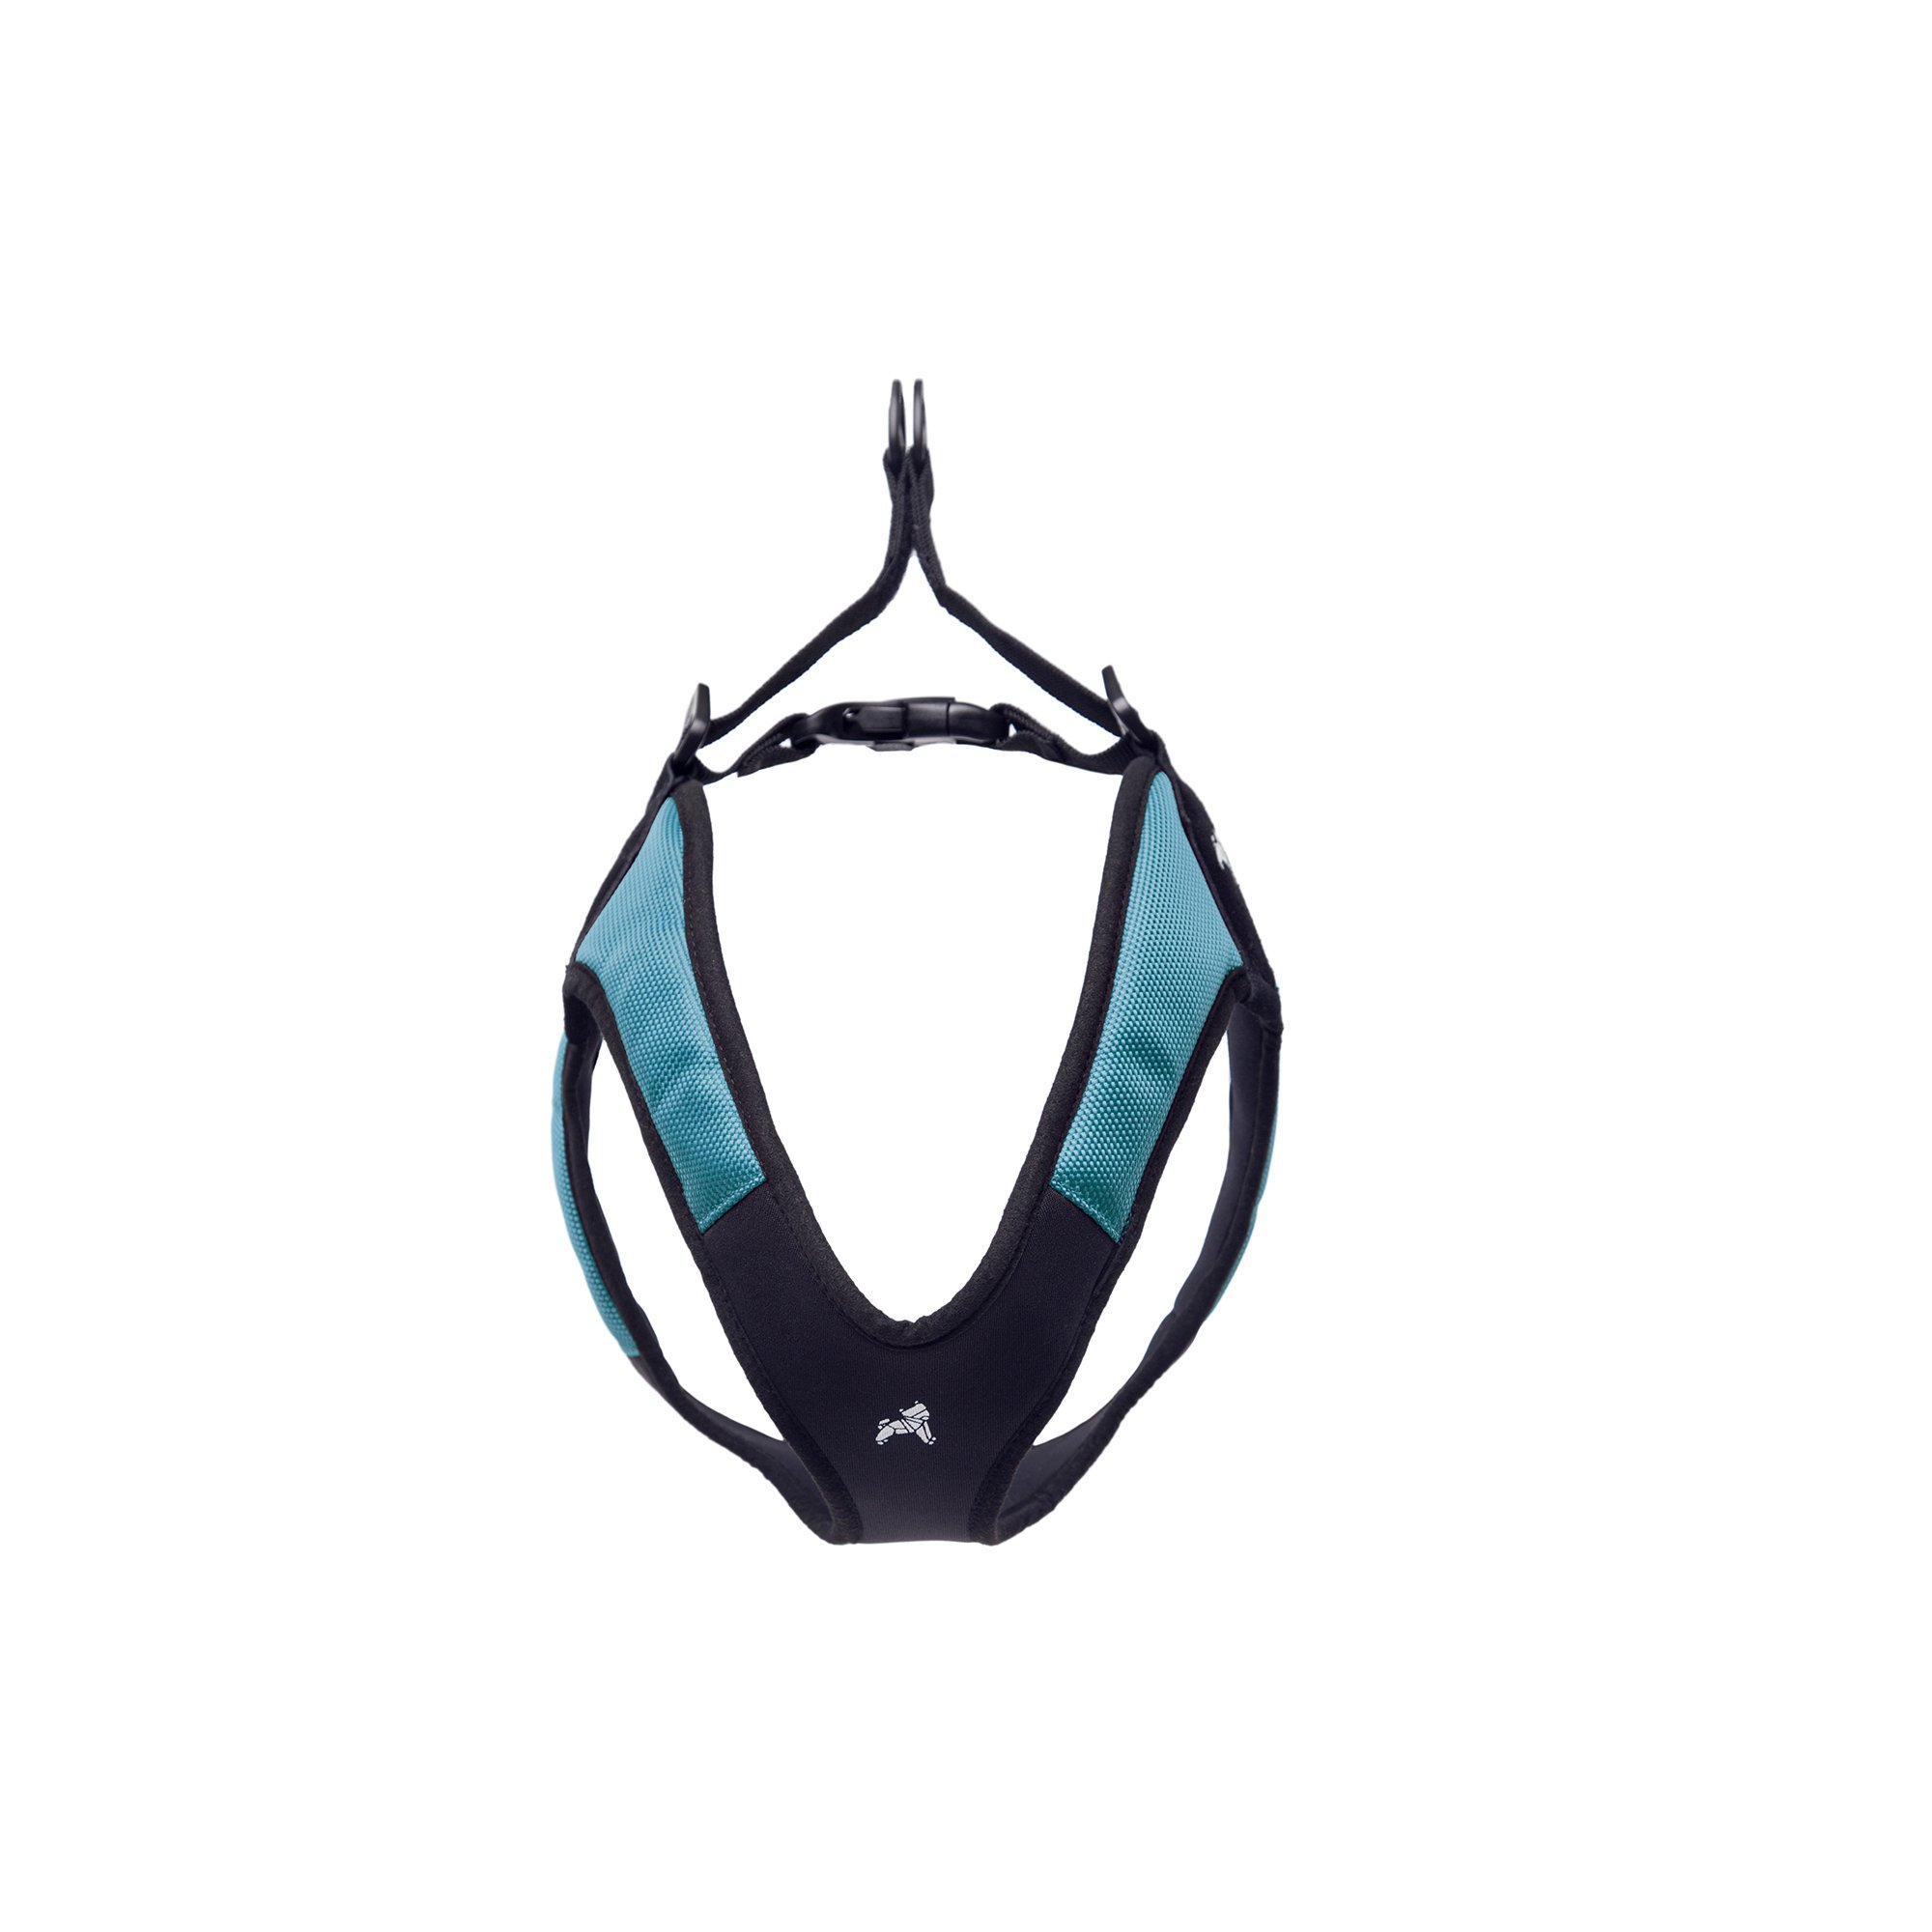 Gooby Escape Free Easy Fit Dog Harness Dogs that Like to Escape Their Harness, Turquoise, Small